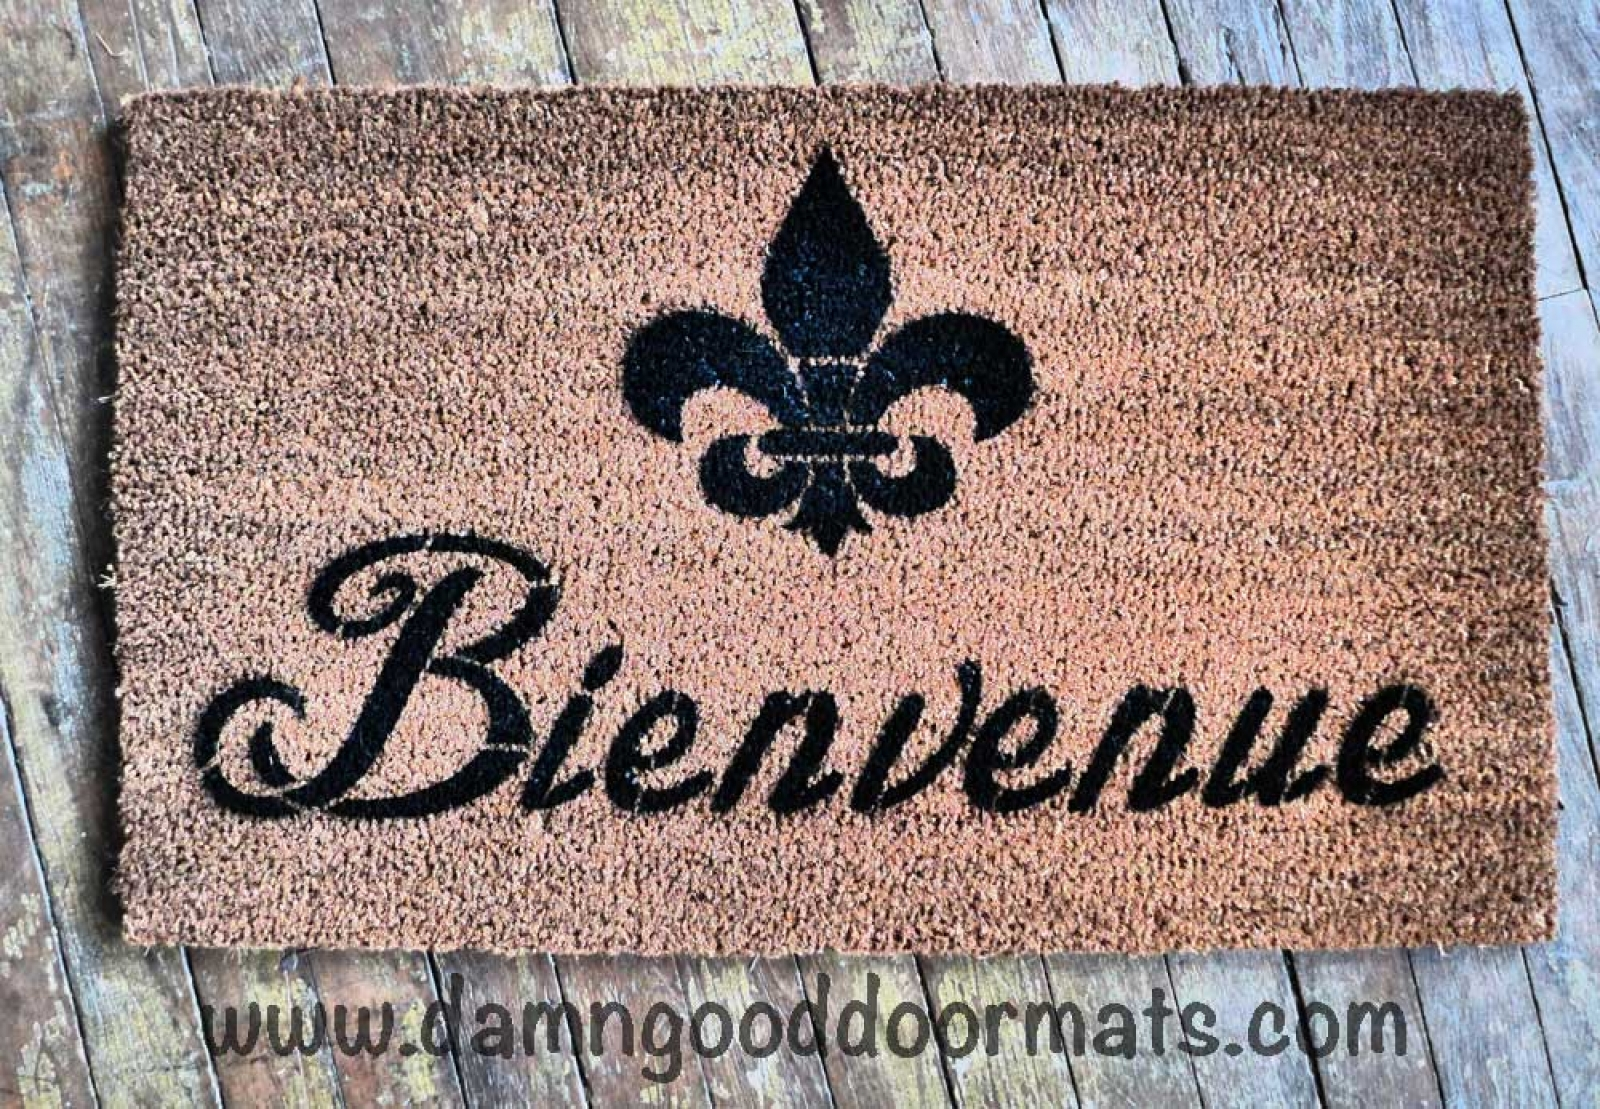 bonjour French good day doormat by Damn Good Doormats | Damn Good ...